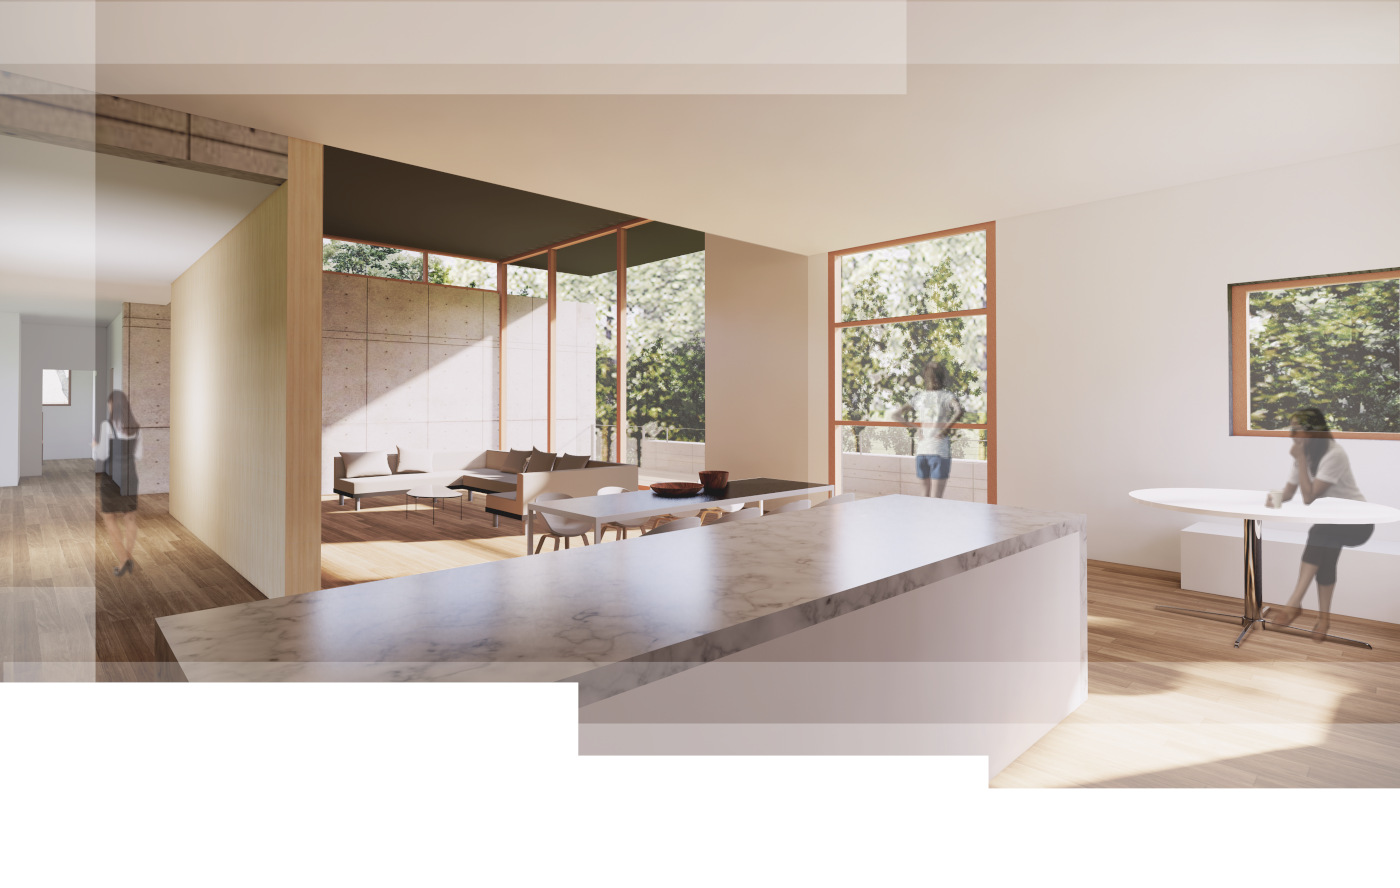 rendering of modern home